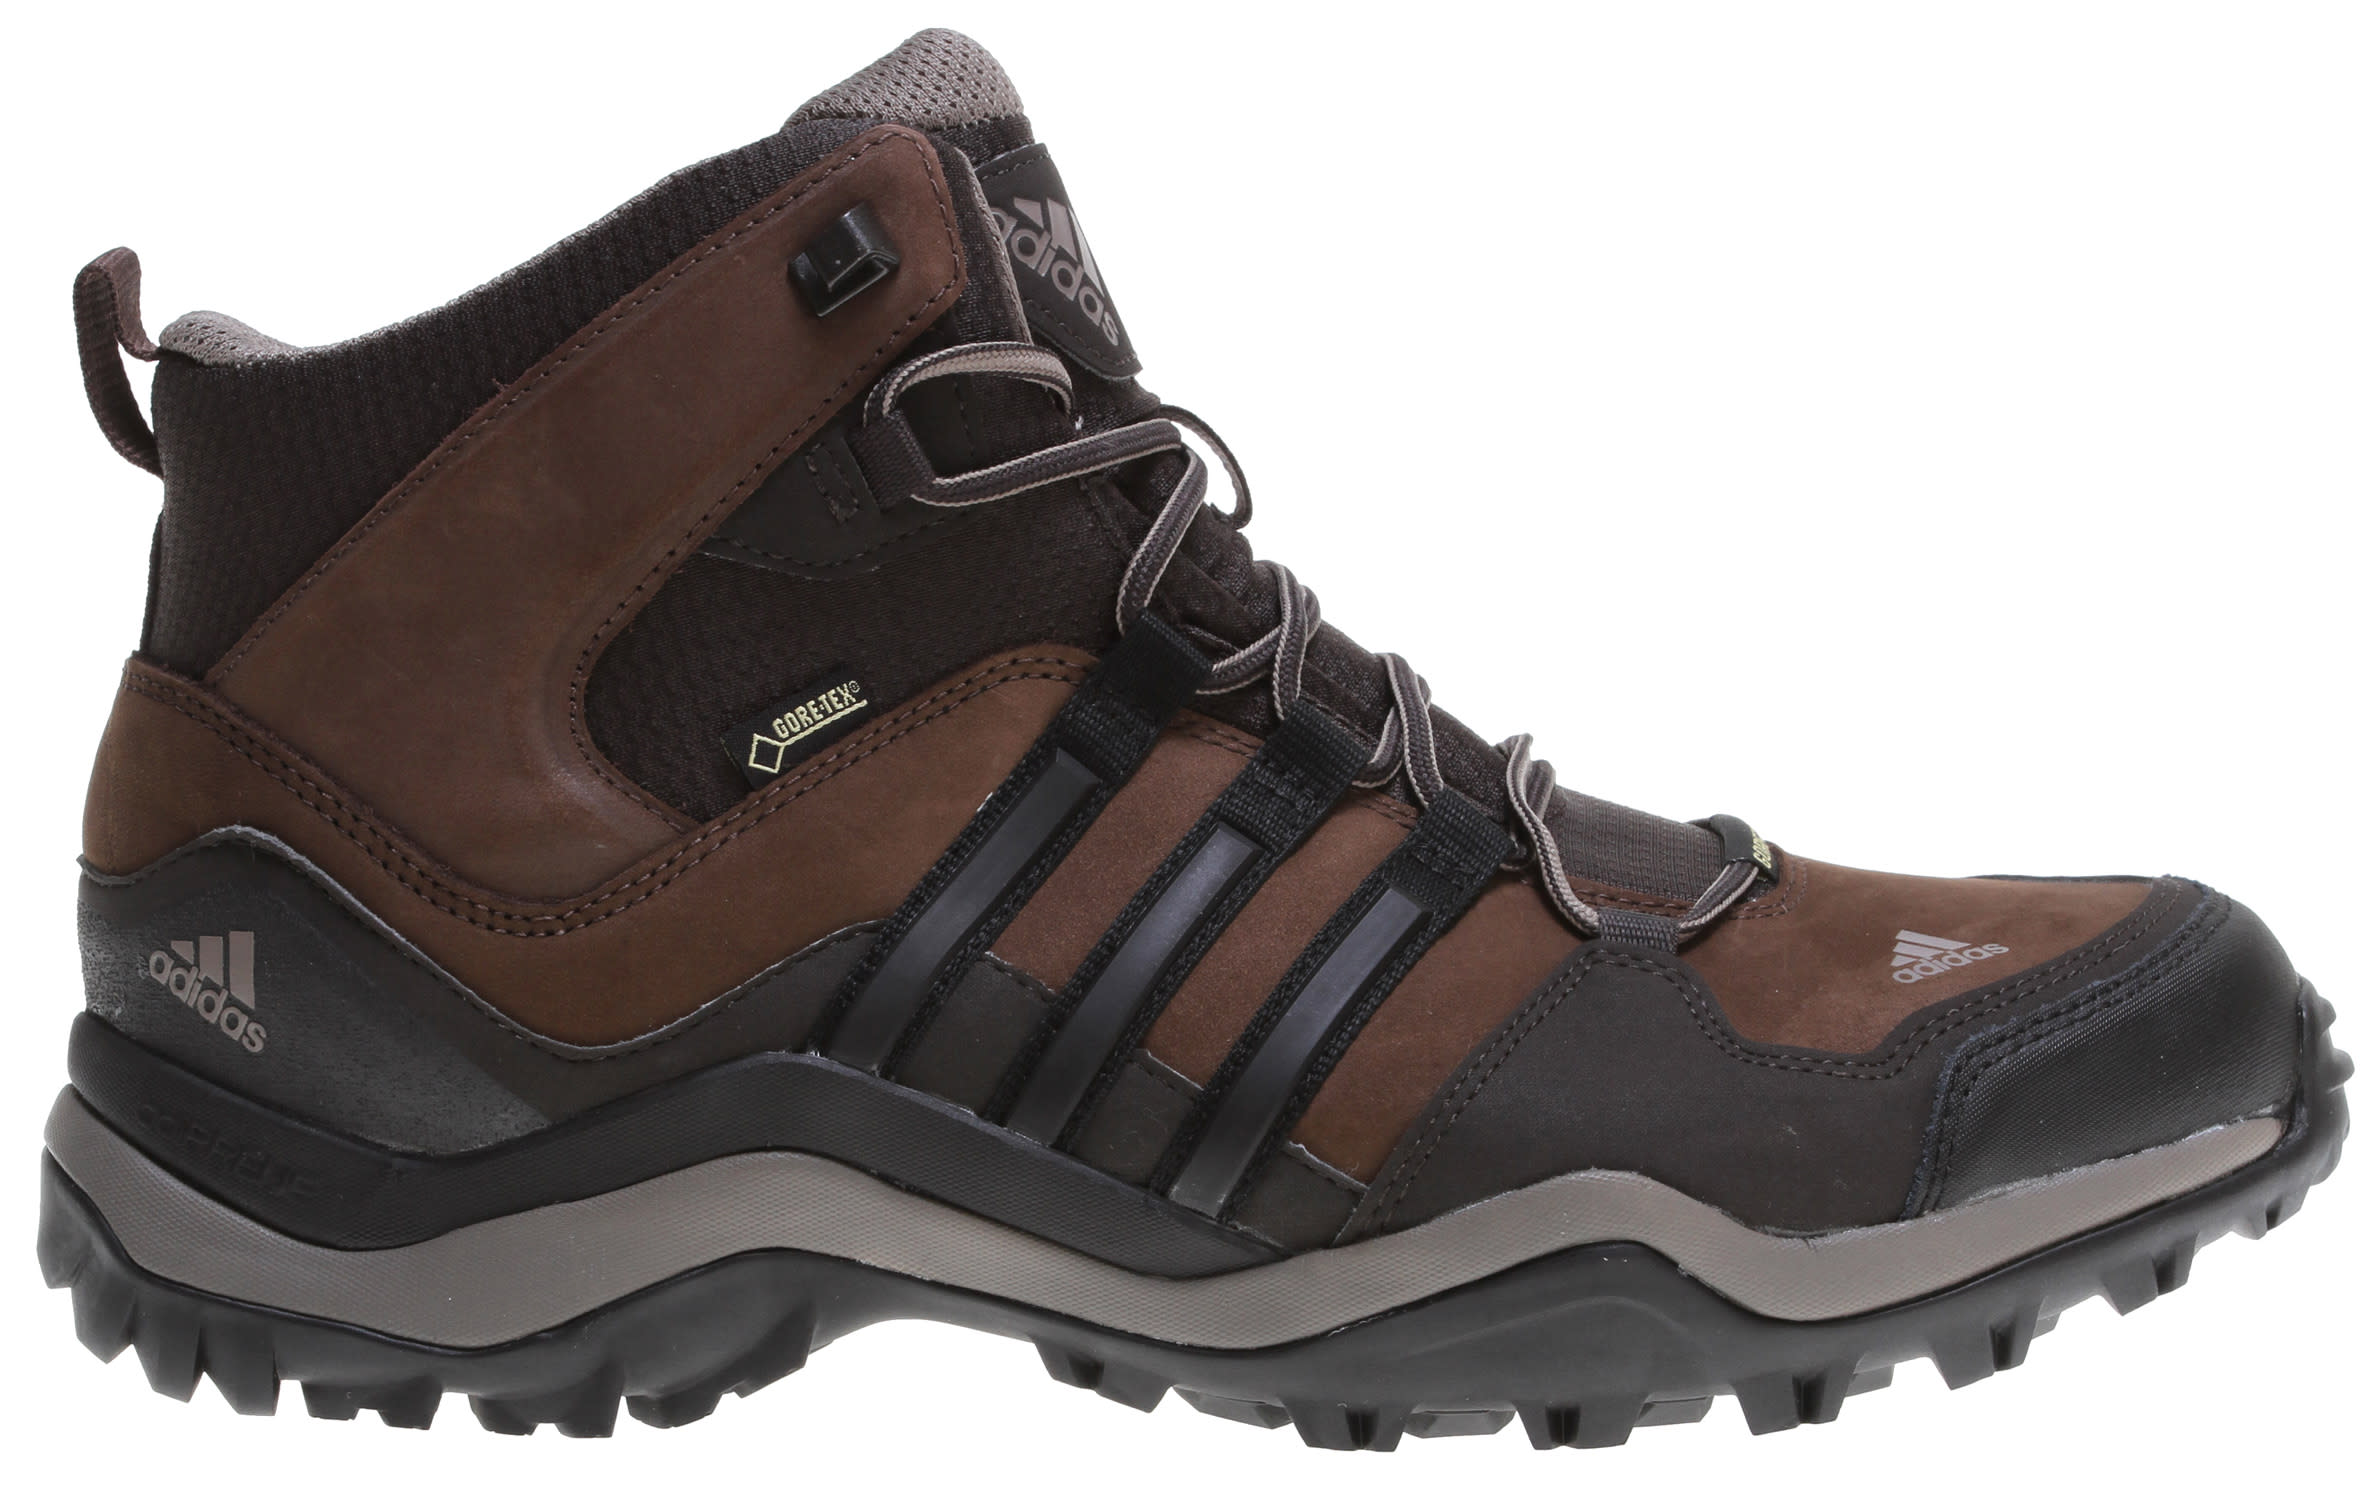 Adidas Volantis Hiking Shoes